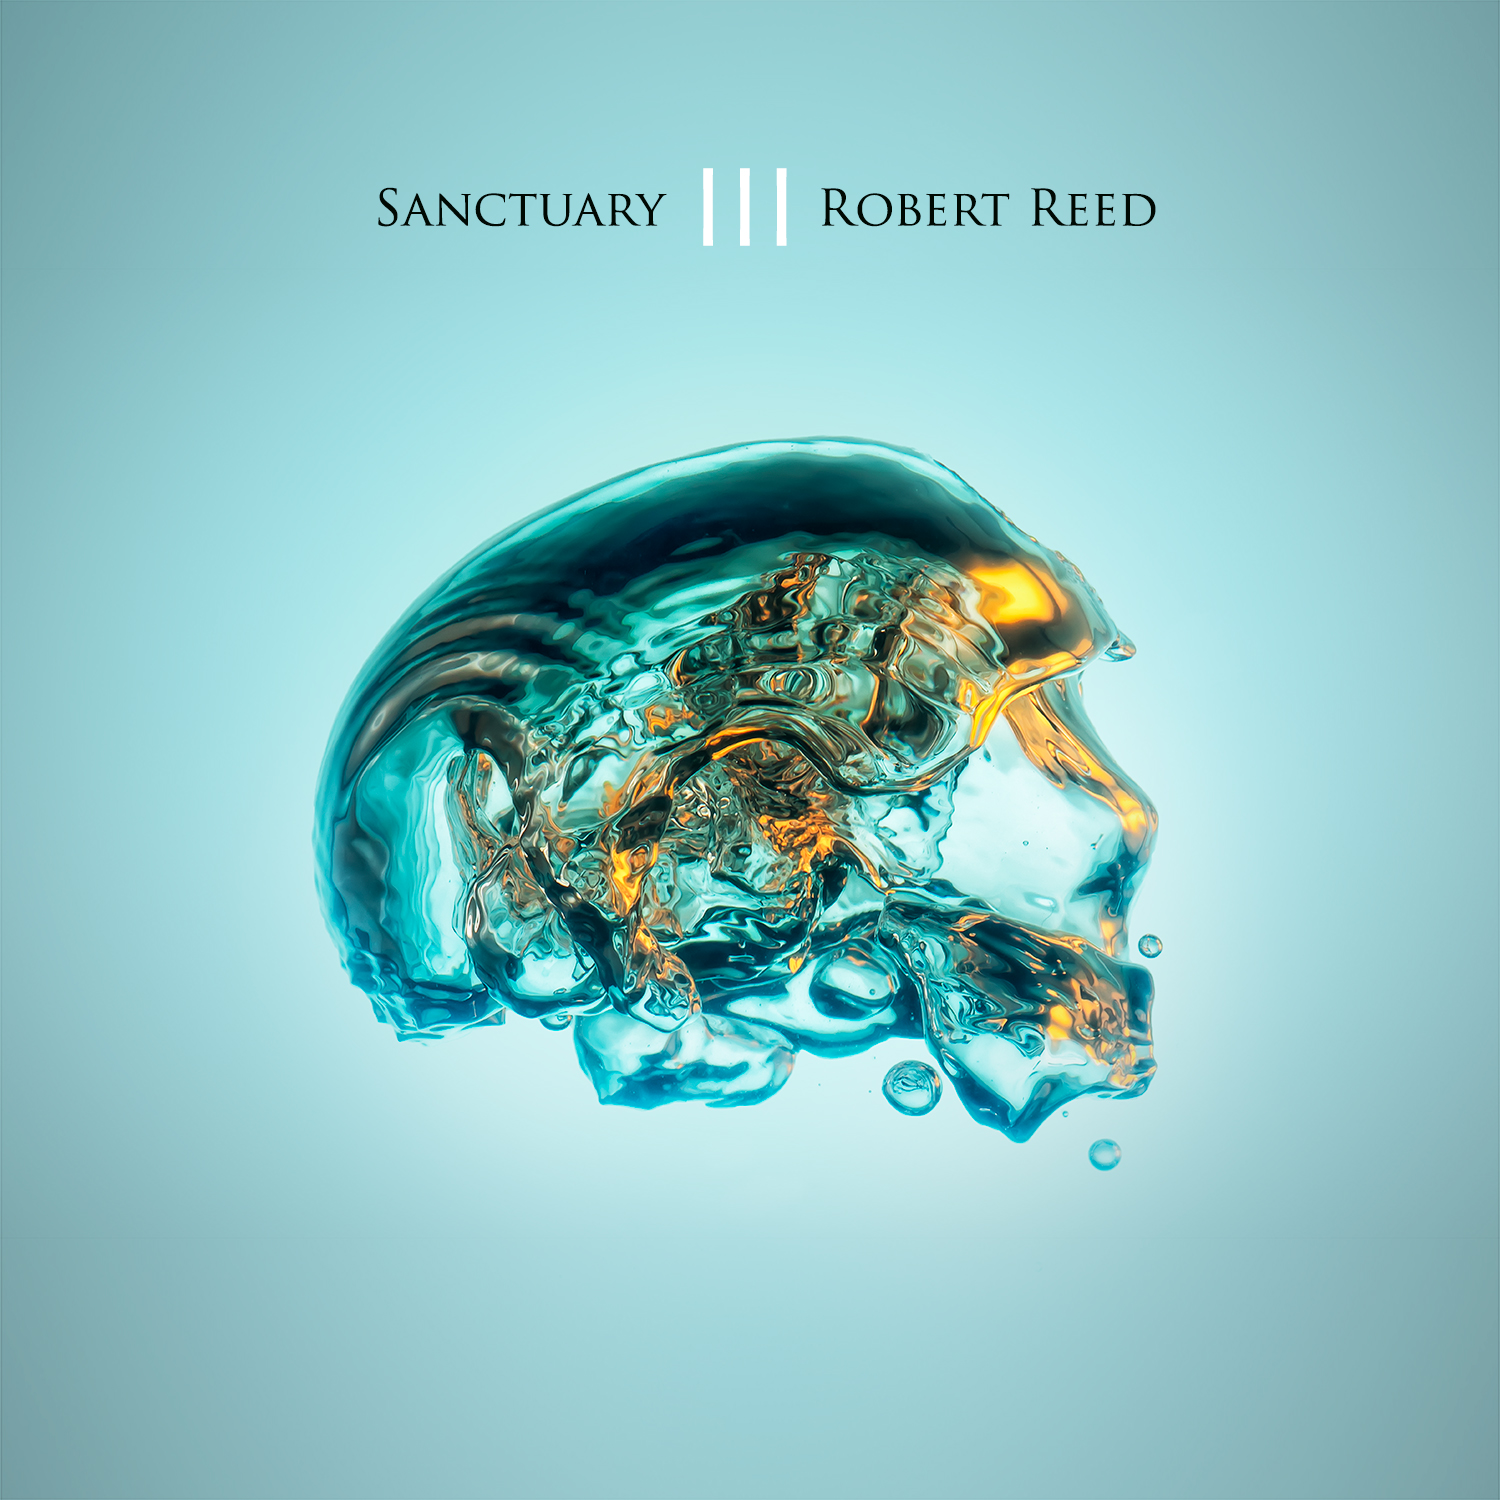 Sanctuary III (CD X2) - ROBERT REED